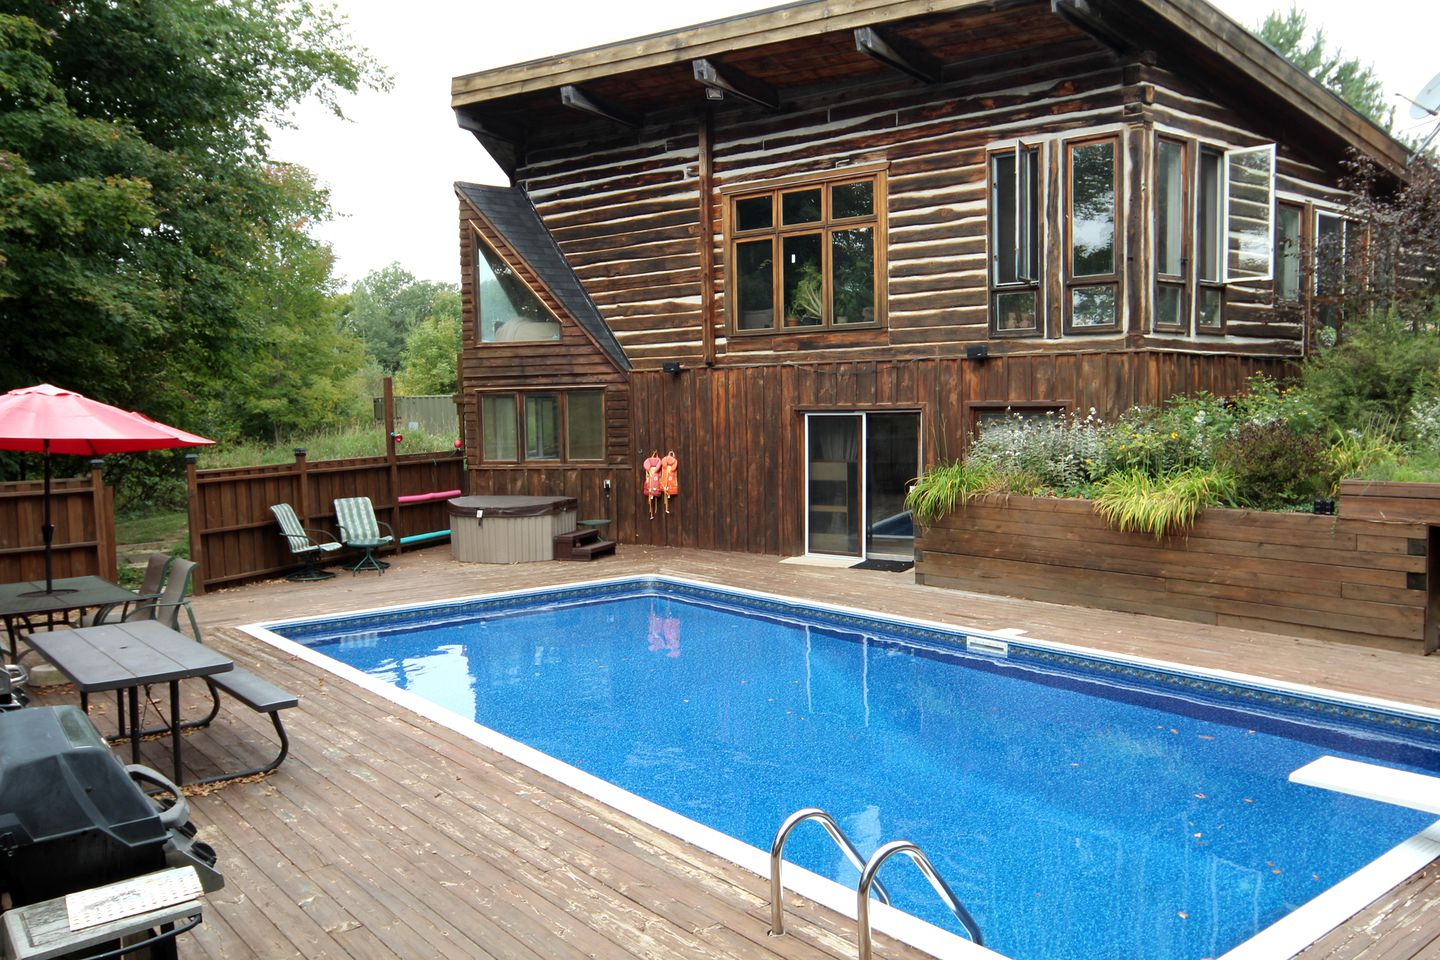 Cabin rental with private pool in Ontario.